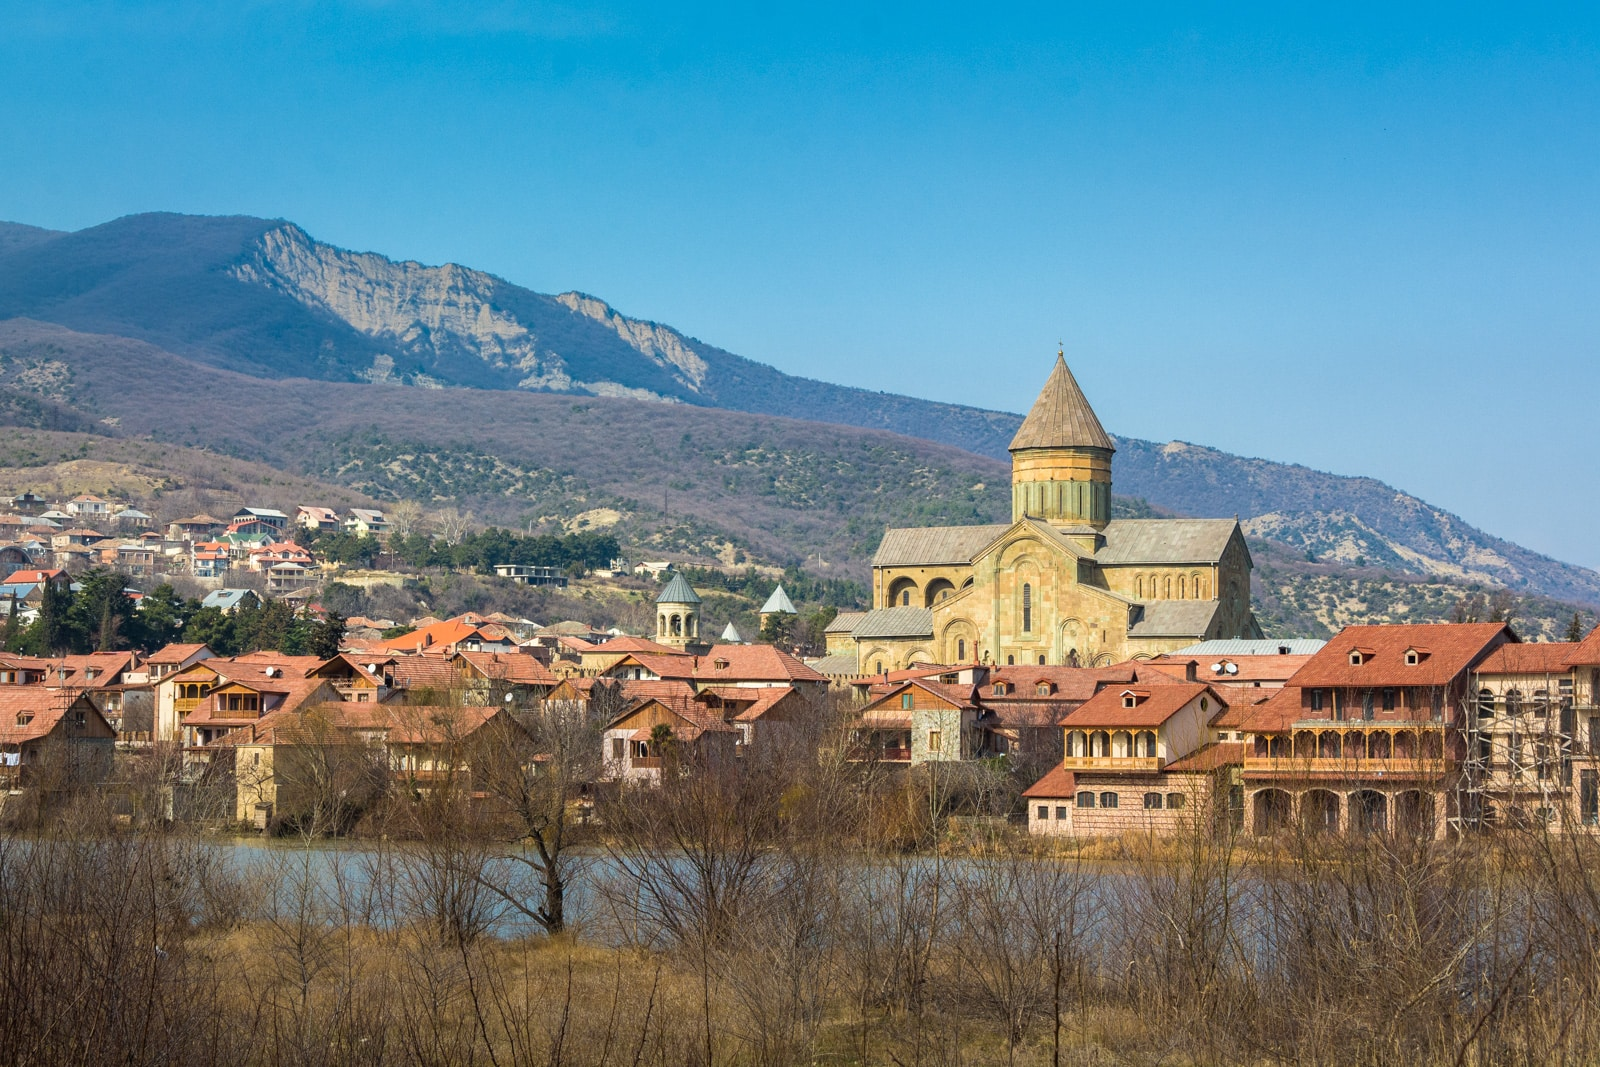 View of Mtskheta, Georgia, across the river